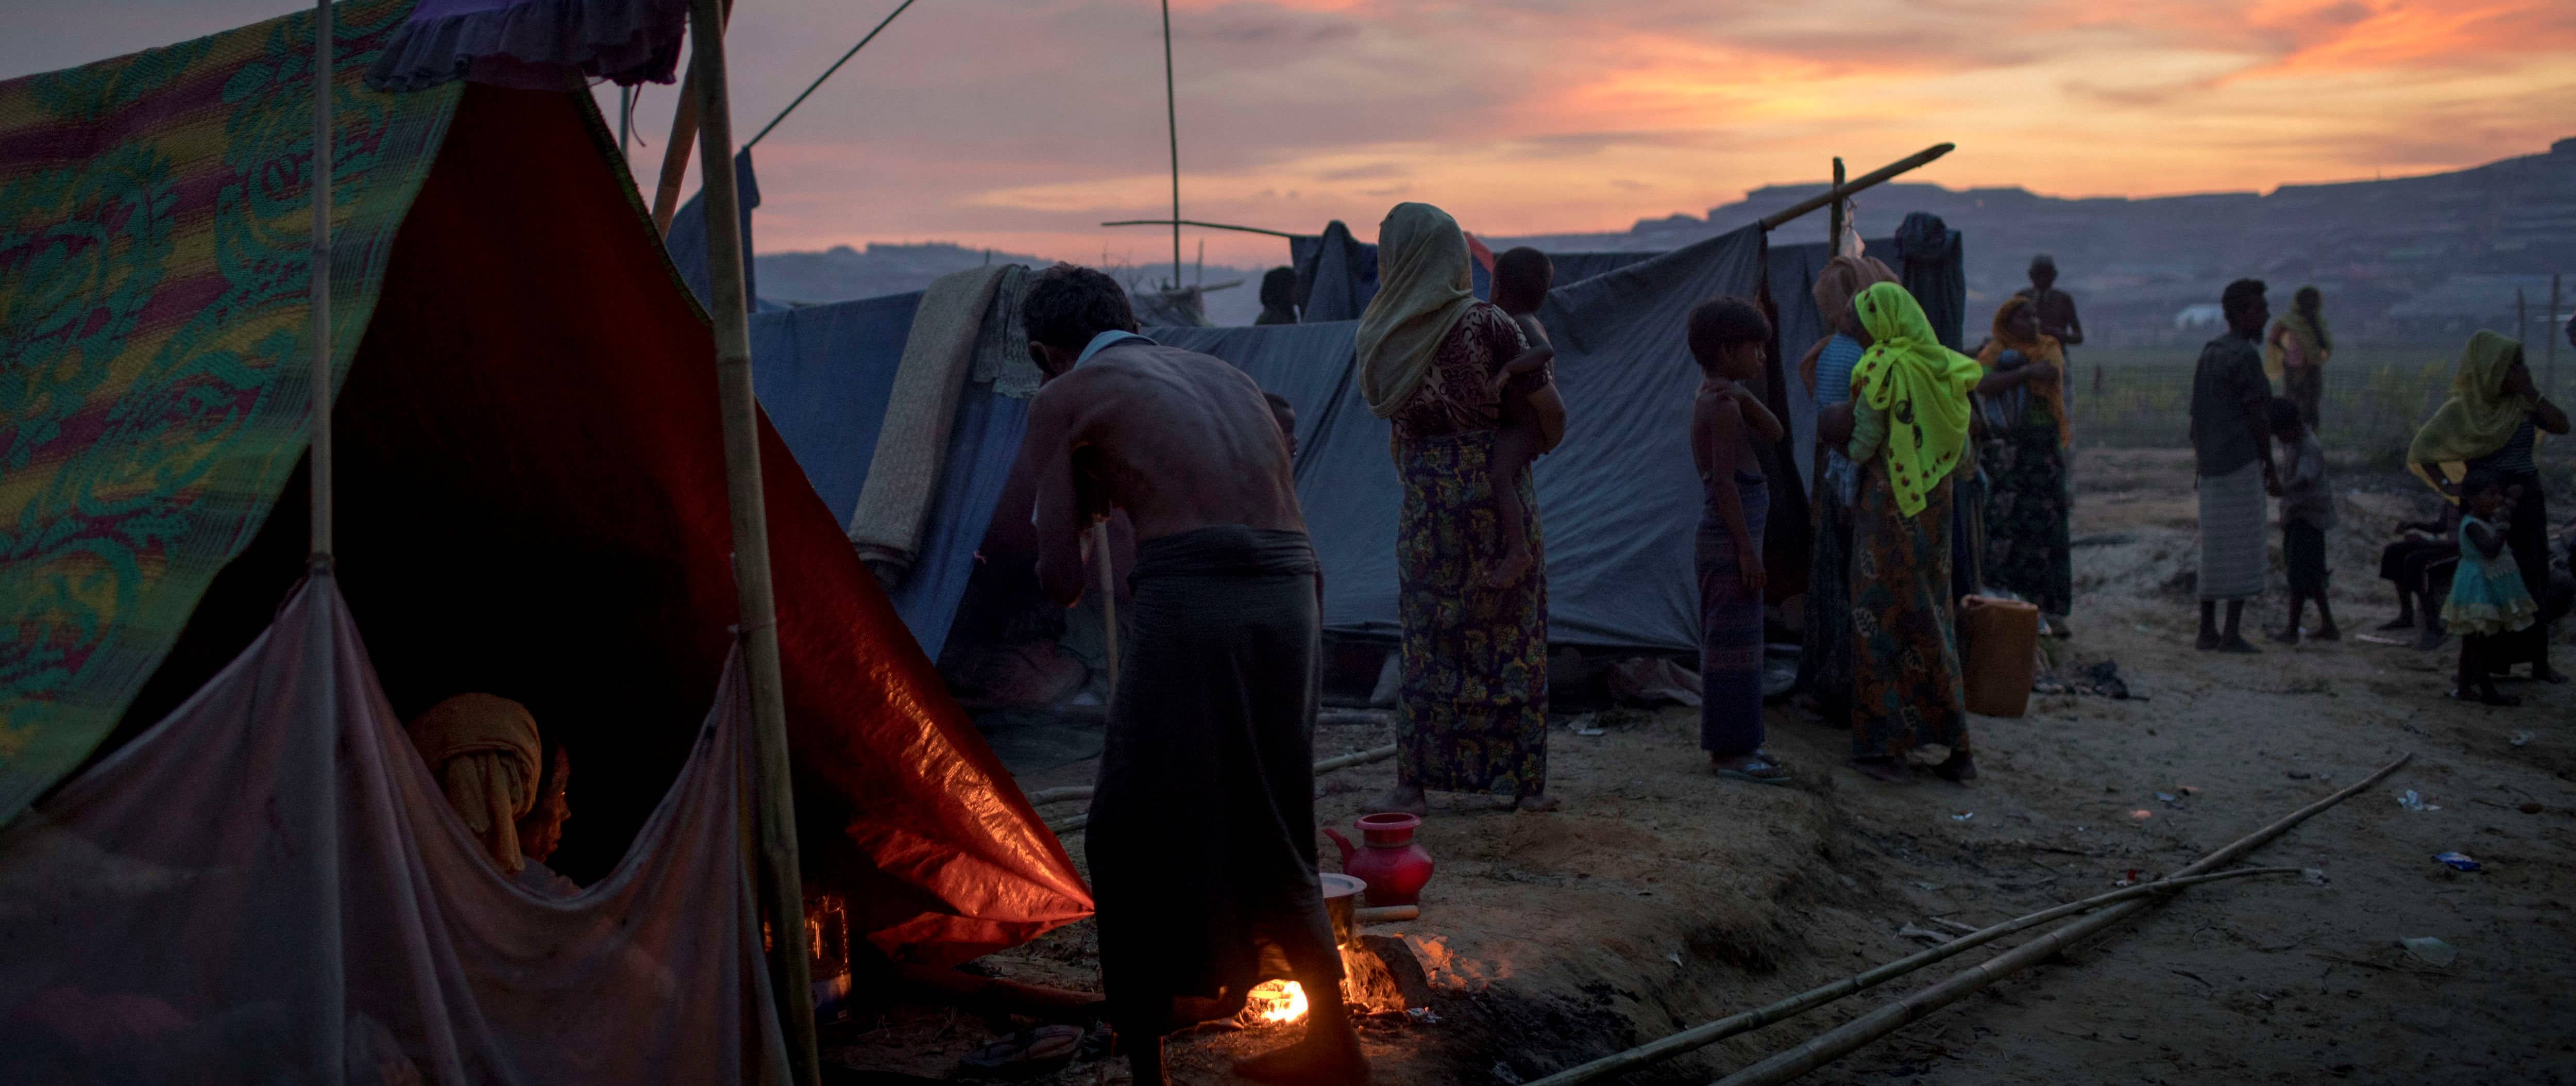 A refugee camp in Bangladesh, September 2017 (Photo: Getty Images/K M Asad)